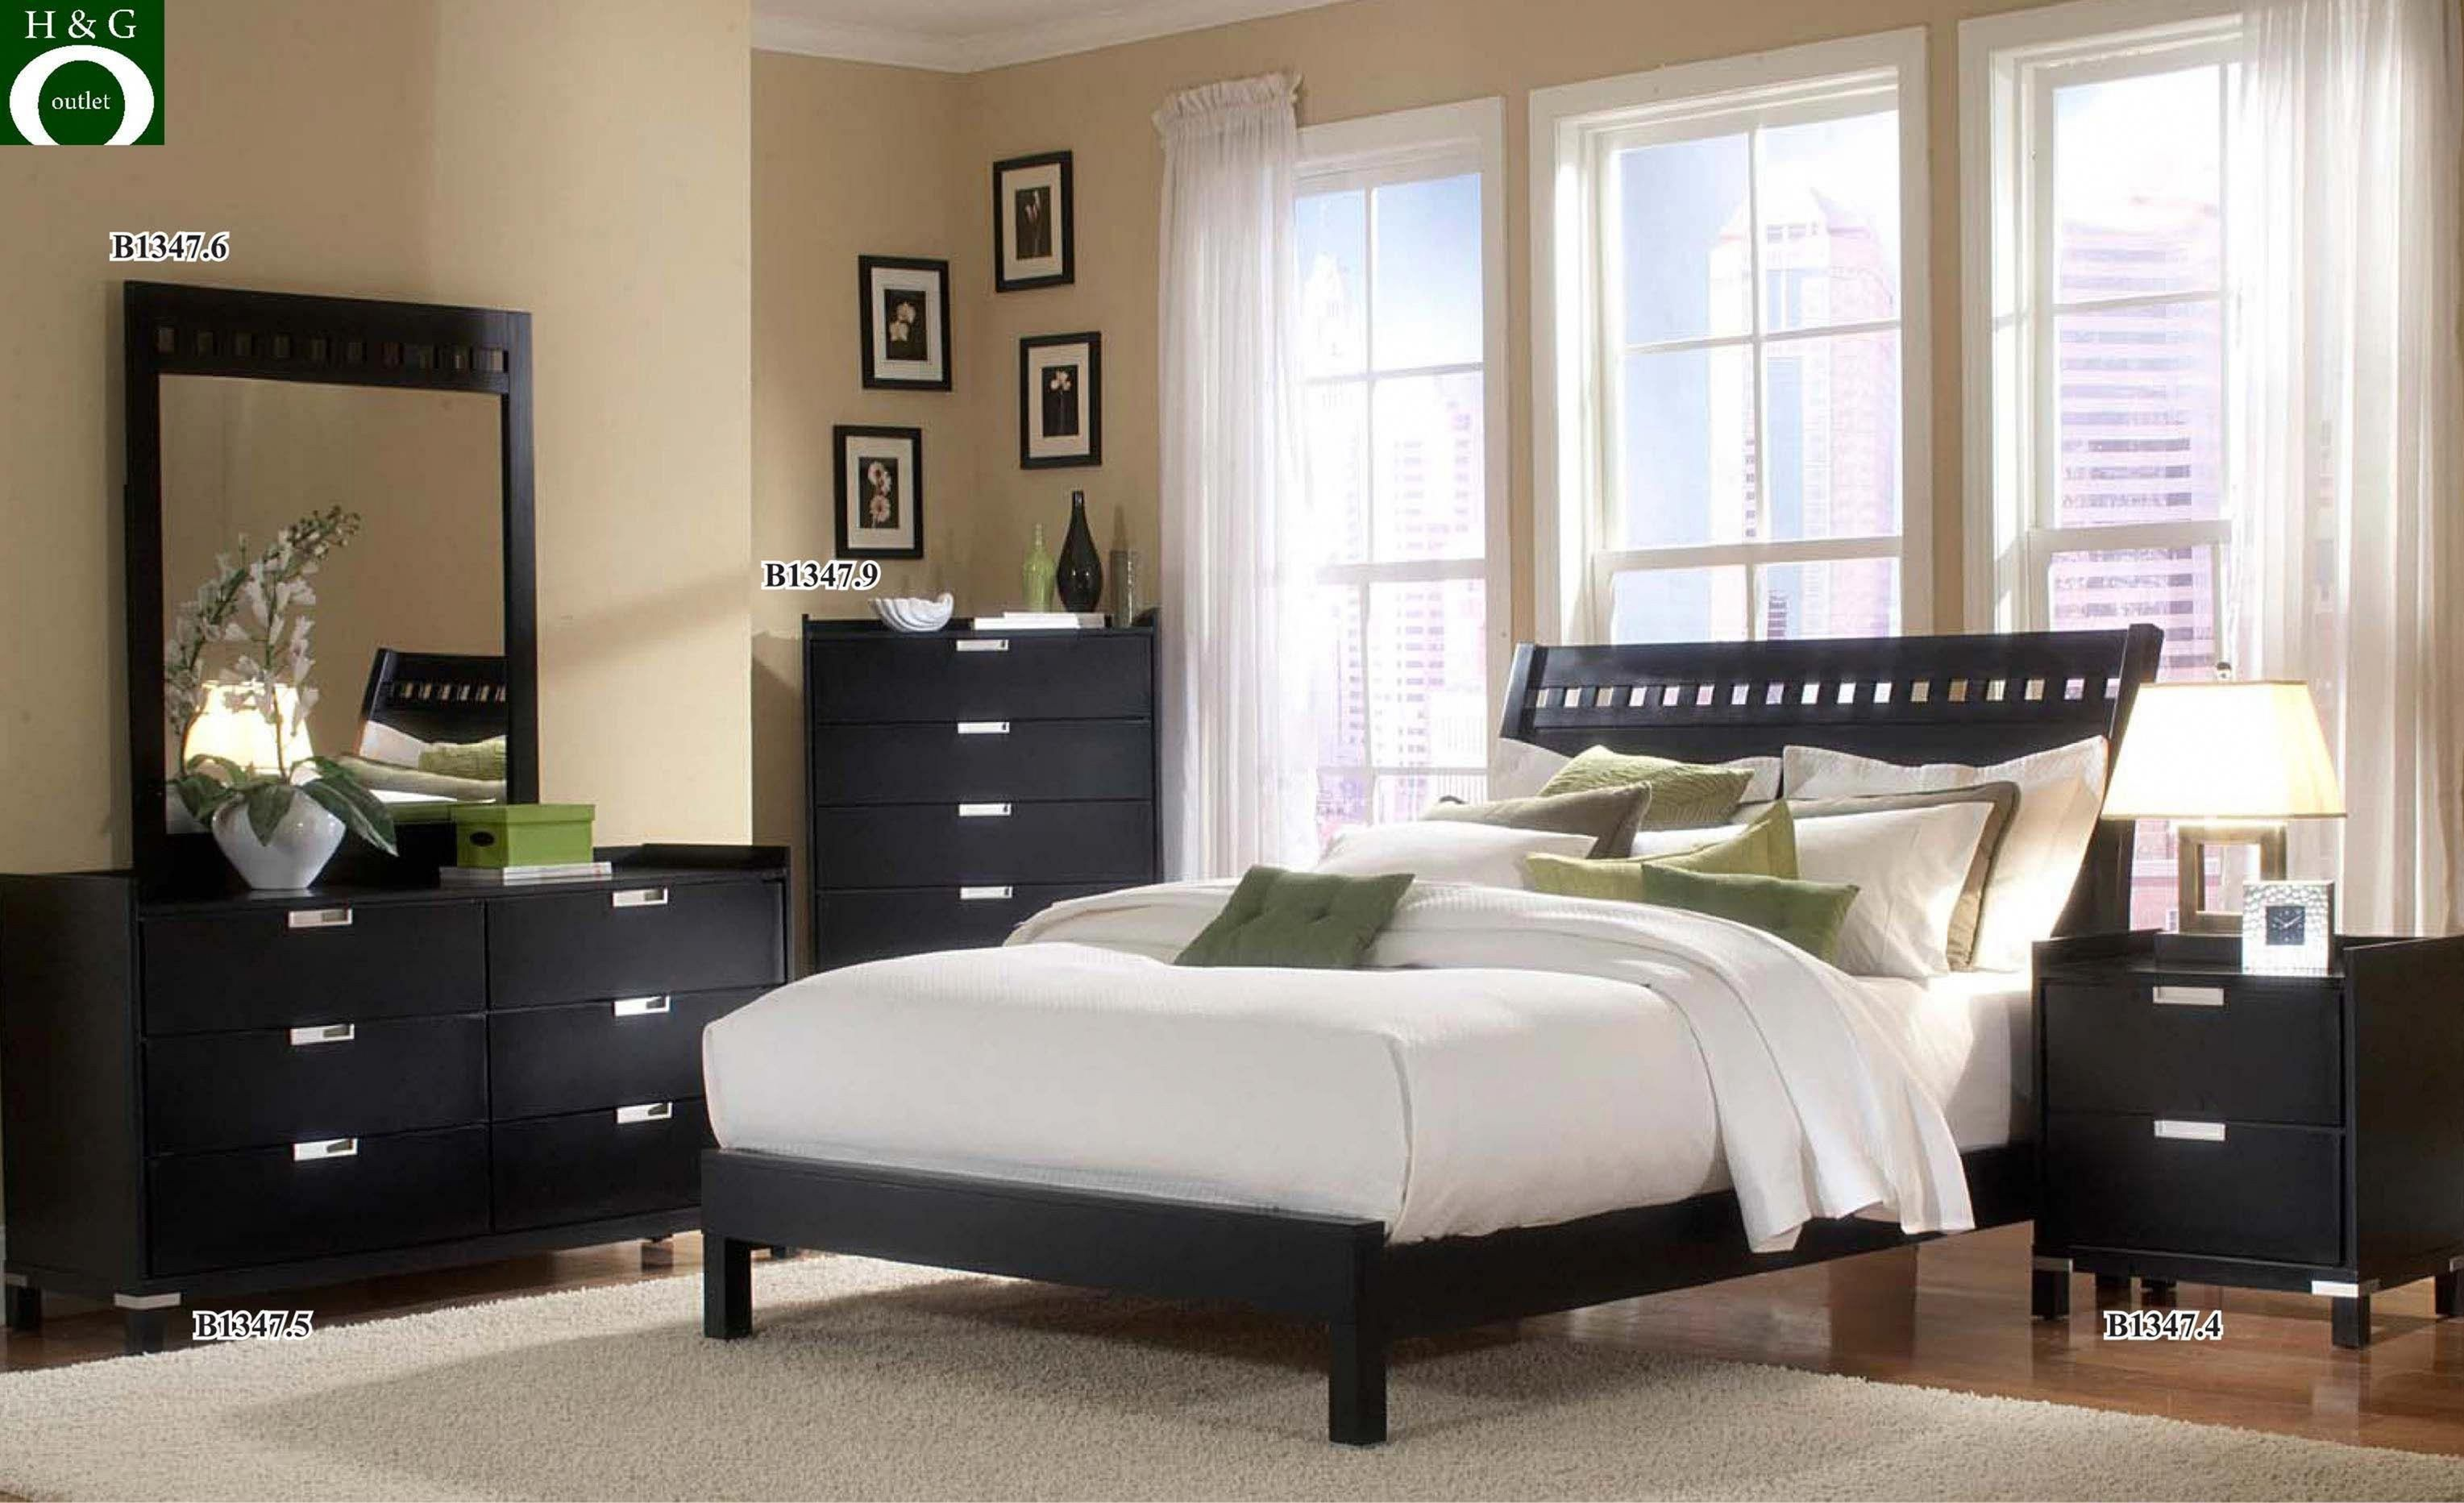 Queen Bed Frame Bedroom Set Mattress Sale The Store Images